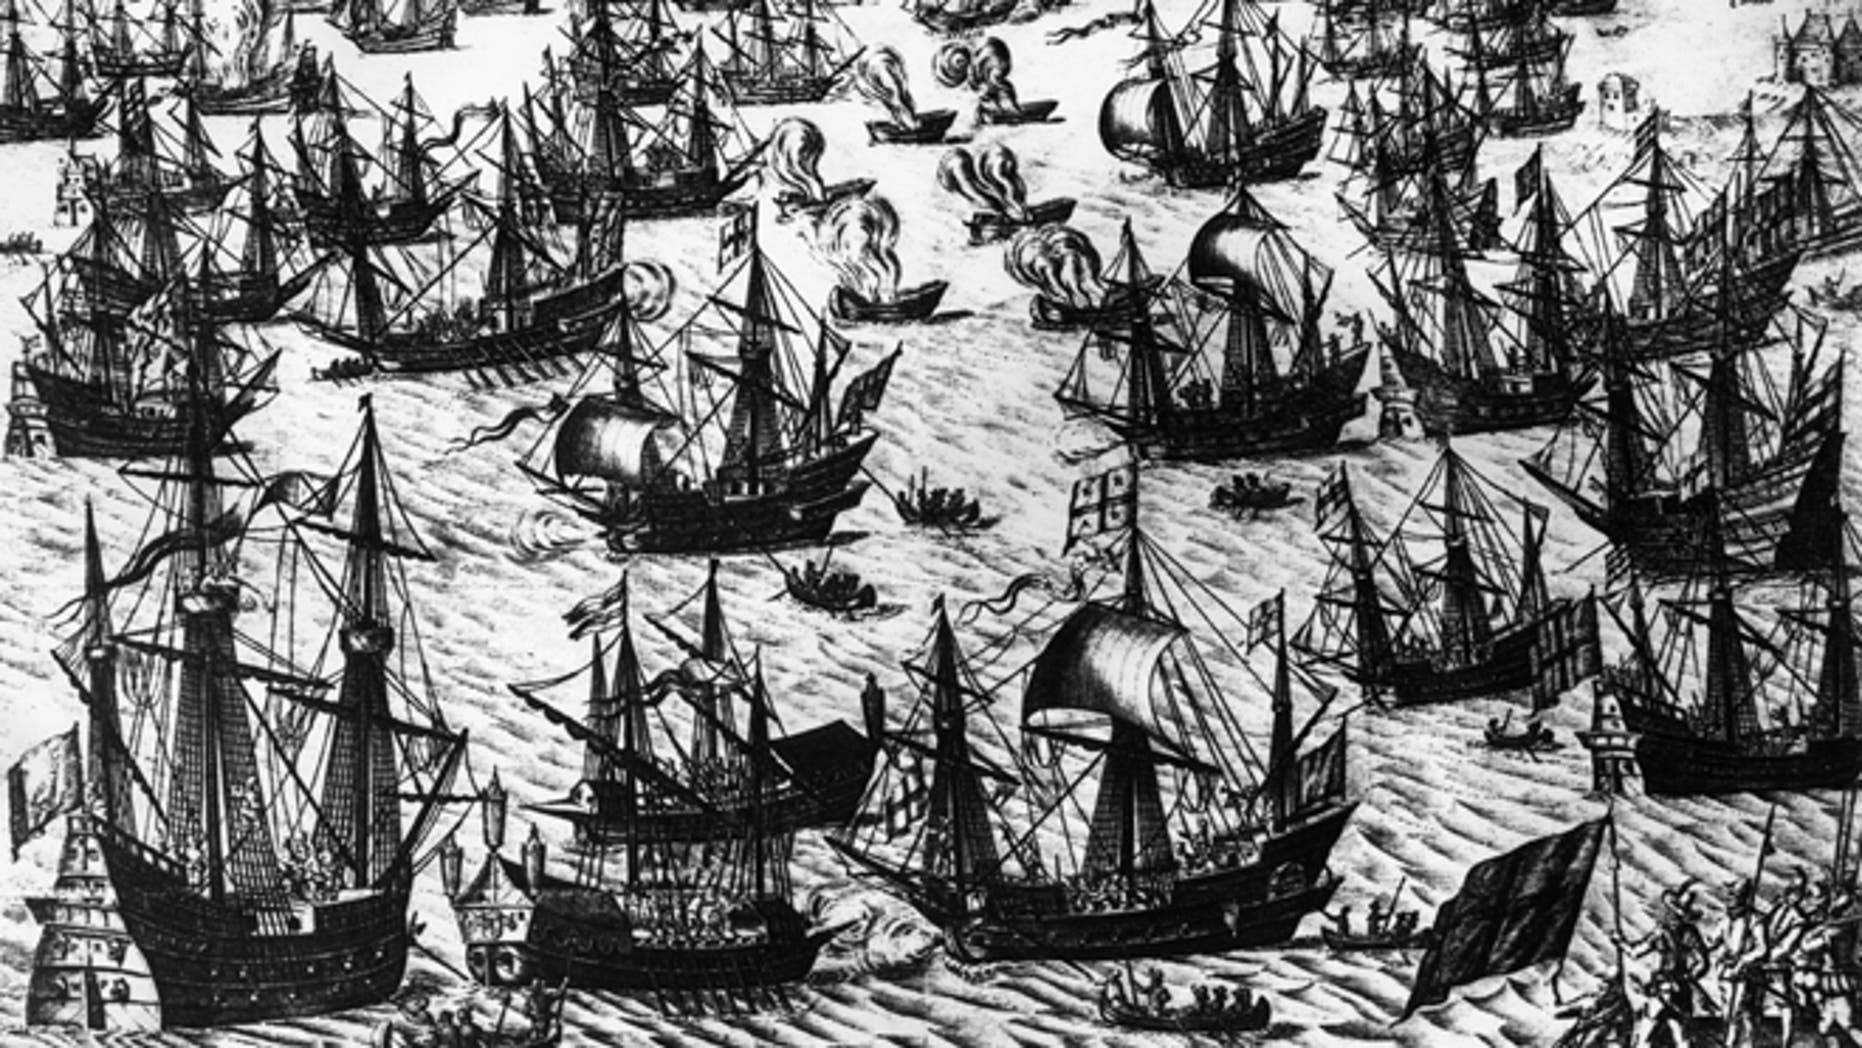 August 1588, A Dutch engraving depicting English fire ships amongst the warships of the Spanish Armada on 7th and 8th August 1588. The Spanish fleet was at anchor and was forced to cut anchor cables and scatter. (Photo by Hulton Archive/Getty Images)